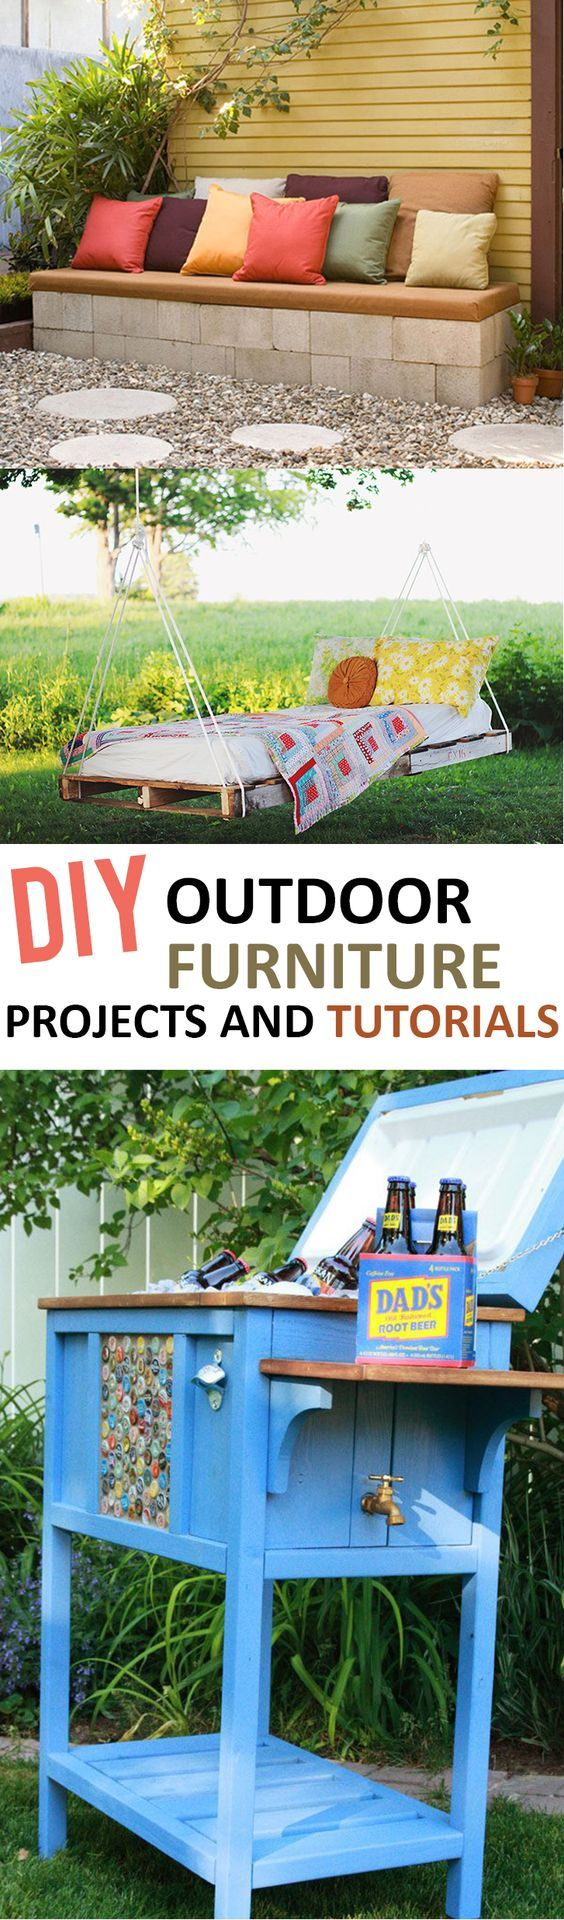 Outdoor, outdoor furniture, DIY outdoor furniture, outdoor living, outdoor DIY, gardening hacks, outdoor décor, porch décor, outdoor entertainment, outdoor activities